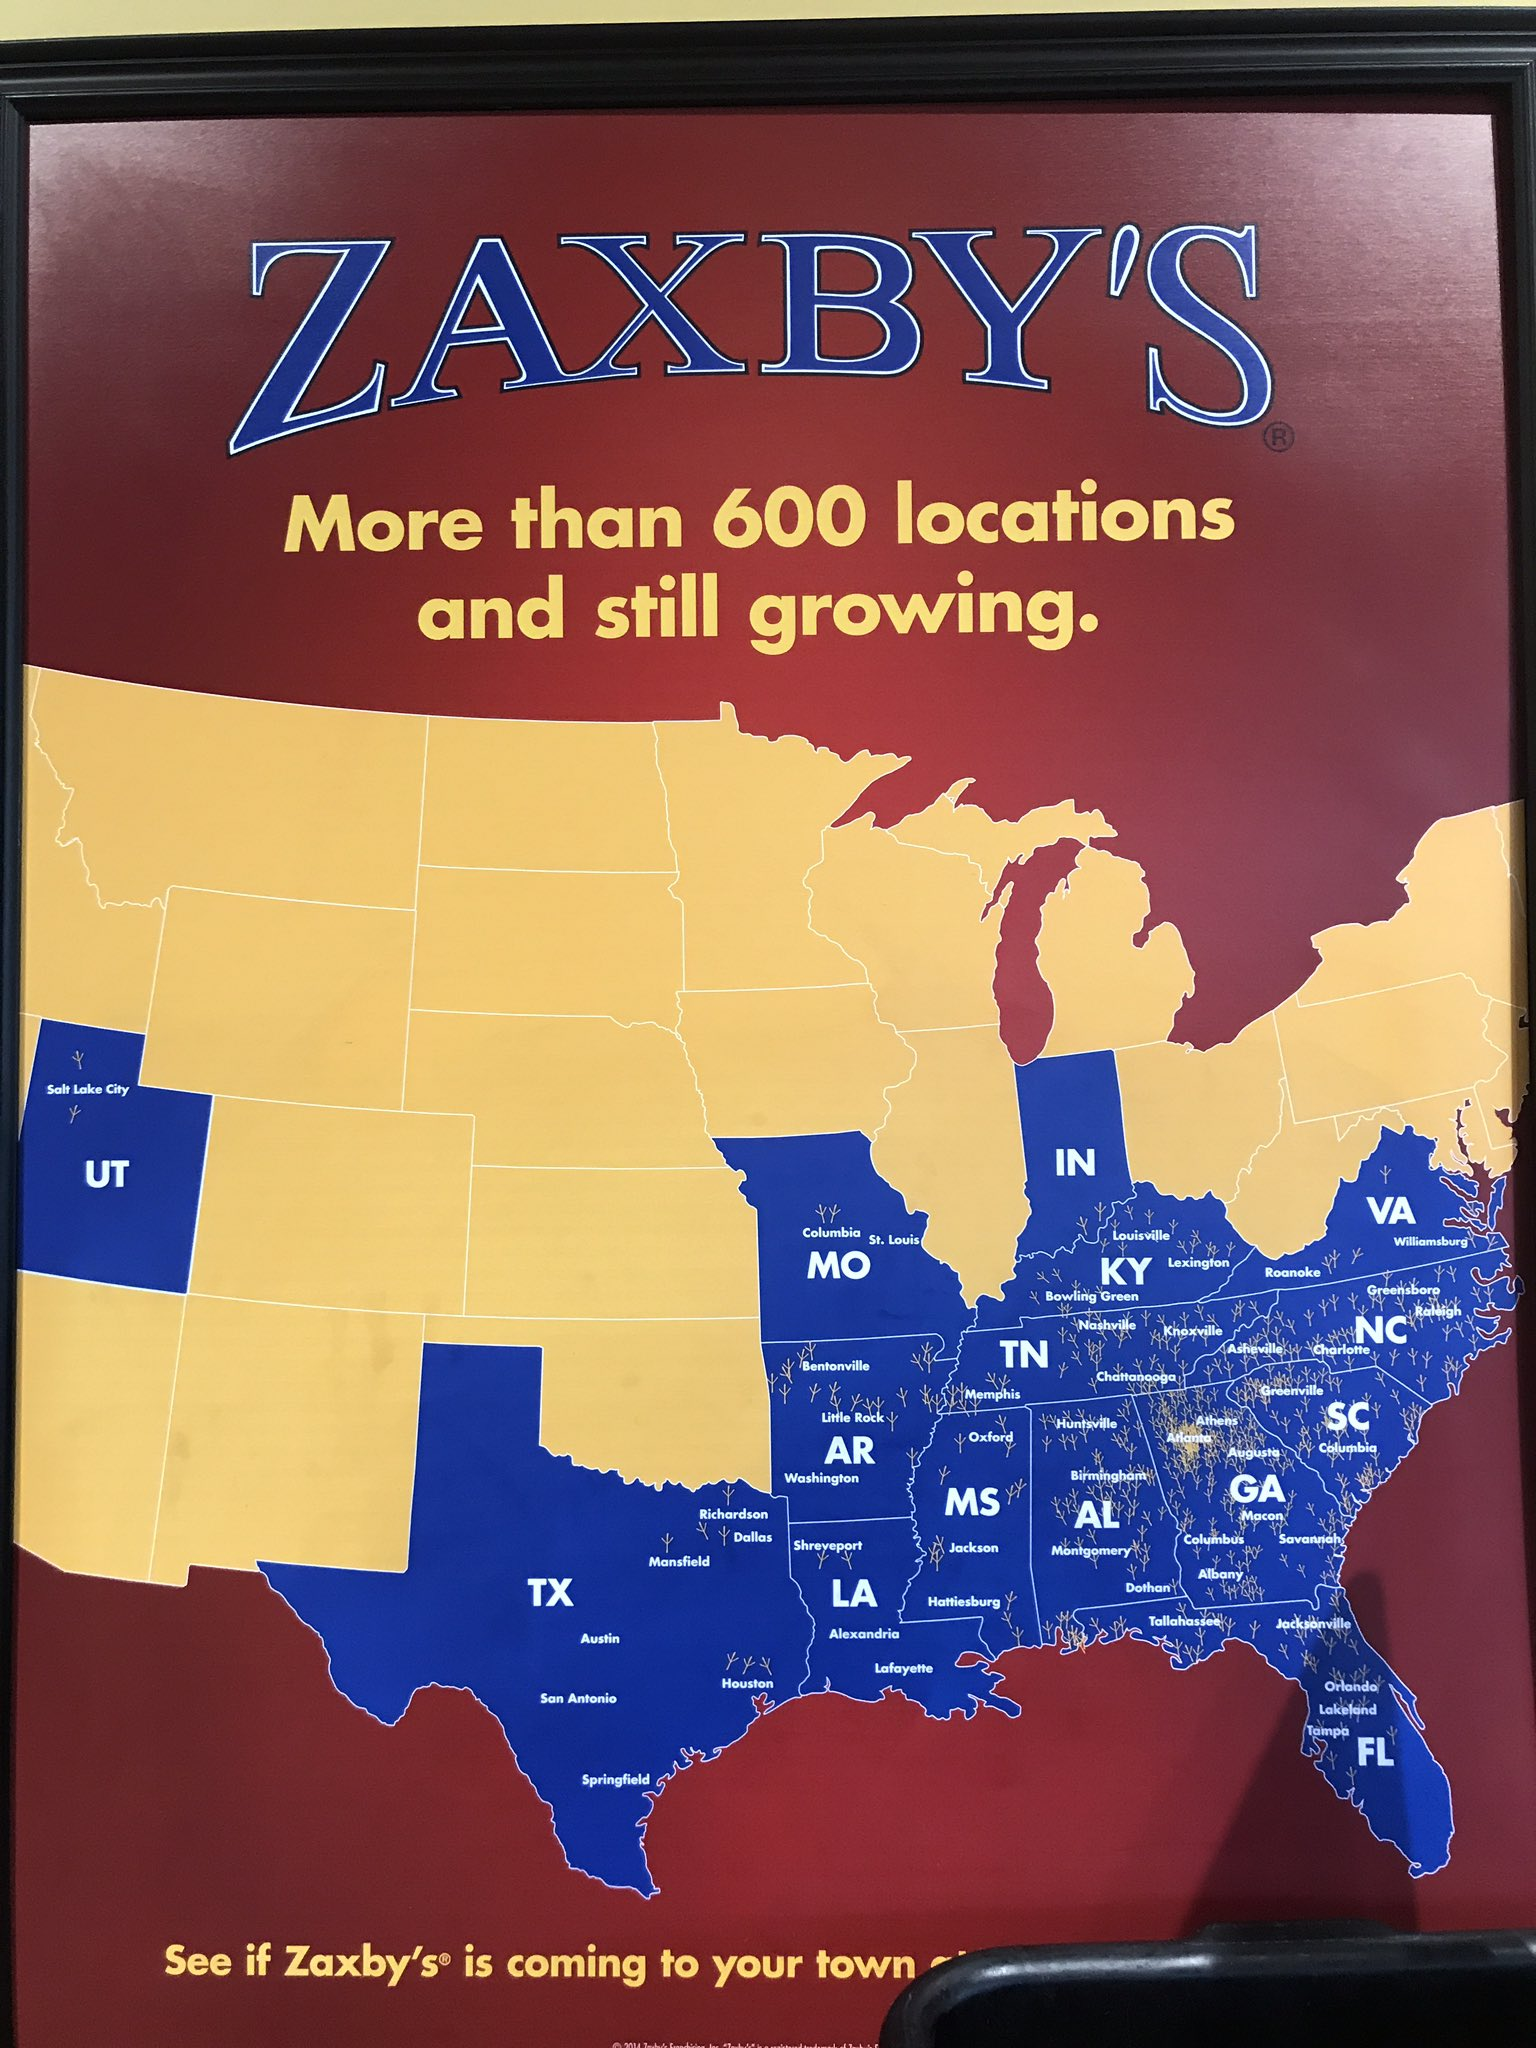 jc groves on twitter hey caferio if zaxbys can go from the  - jc groves on twitter hey caferio if zaxbys can go from the south toutah y'all can go from the west to georgia bringcaferiosouthiamyourbiggestfan